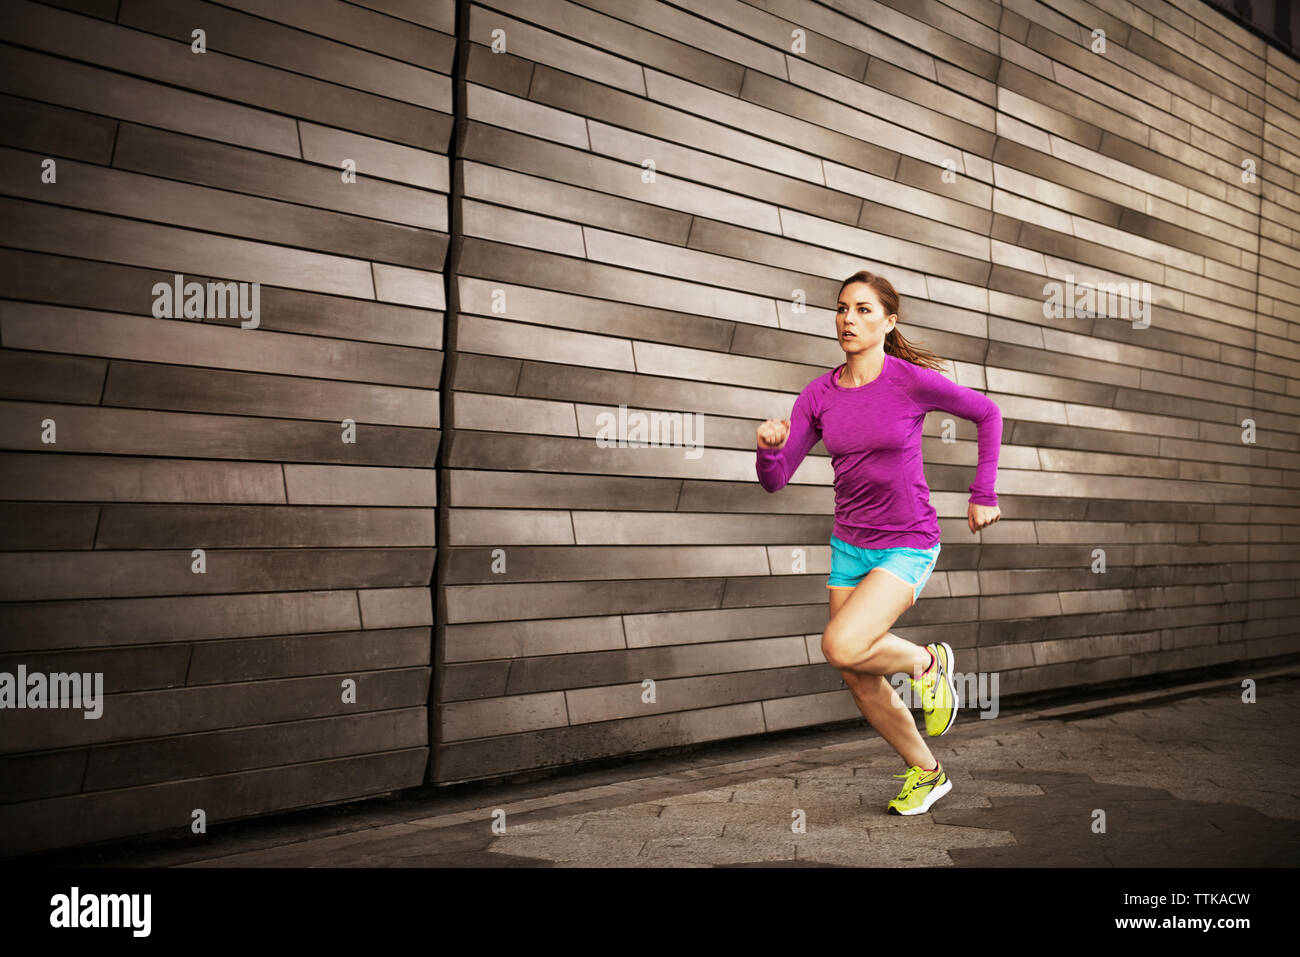 Woman jogging on sidewalk by wall - Stock Image